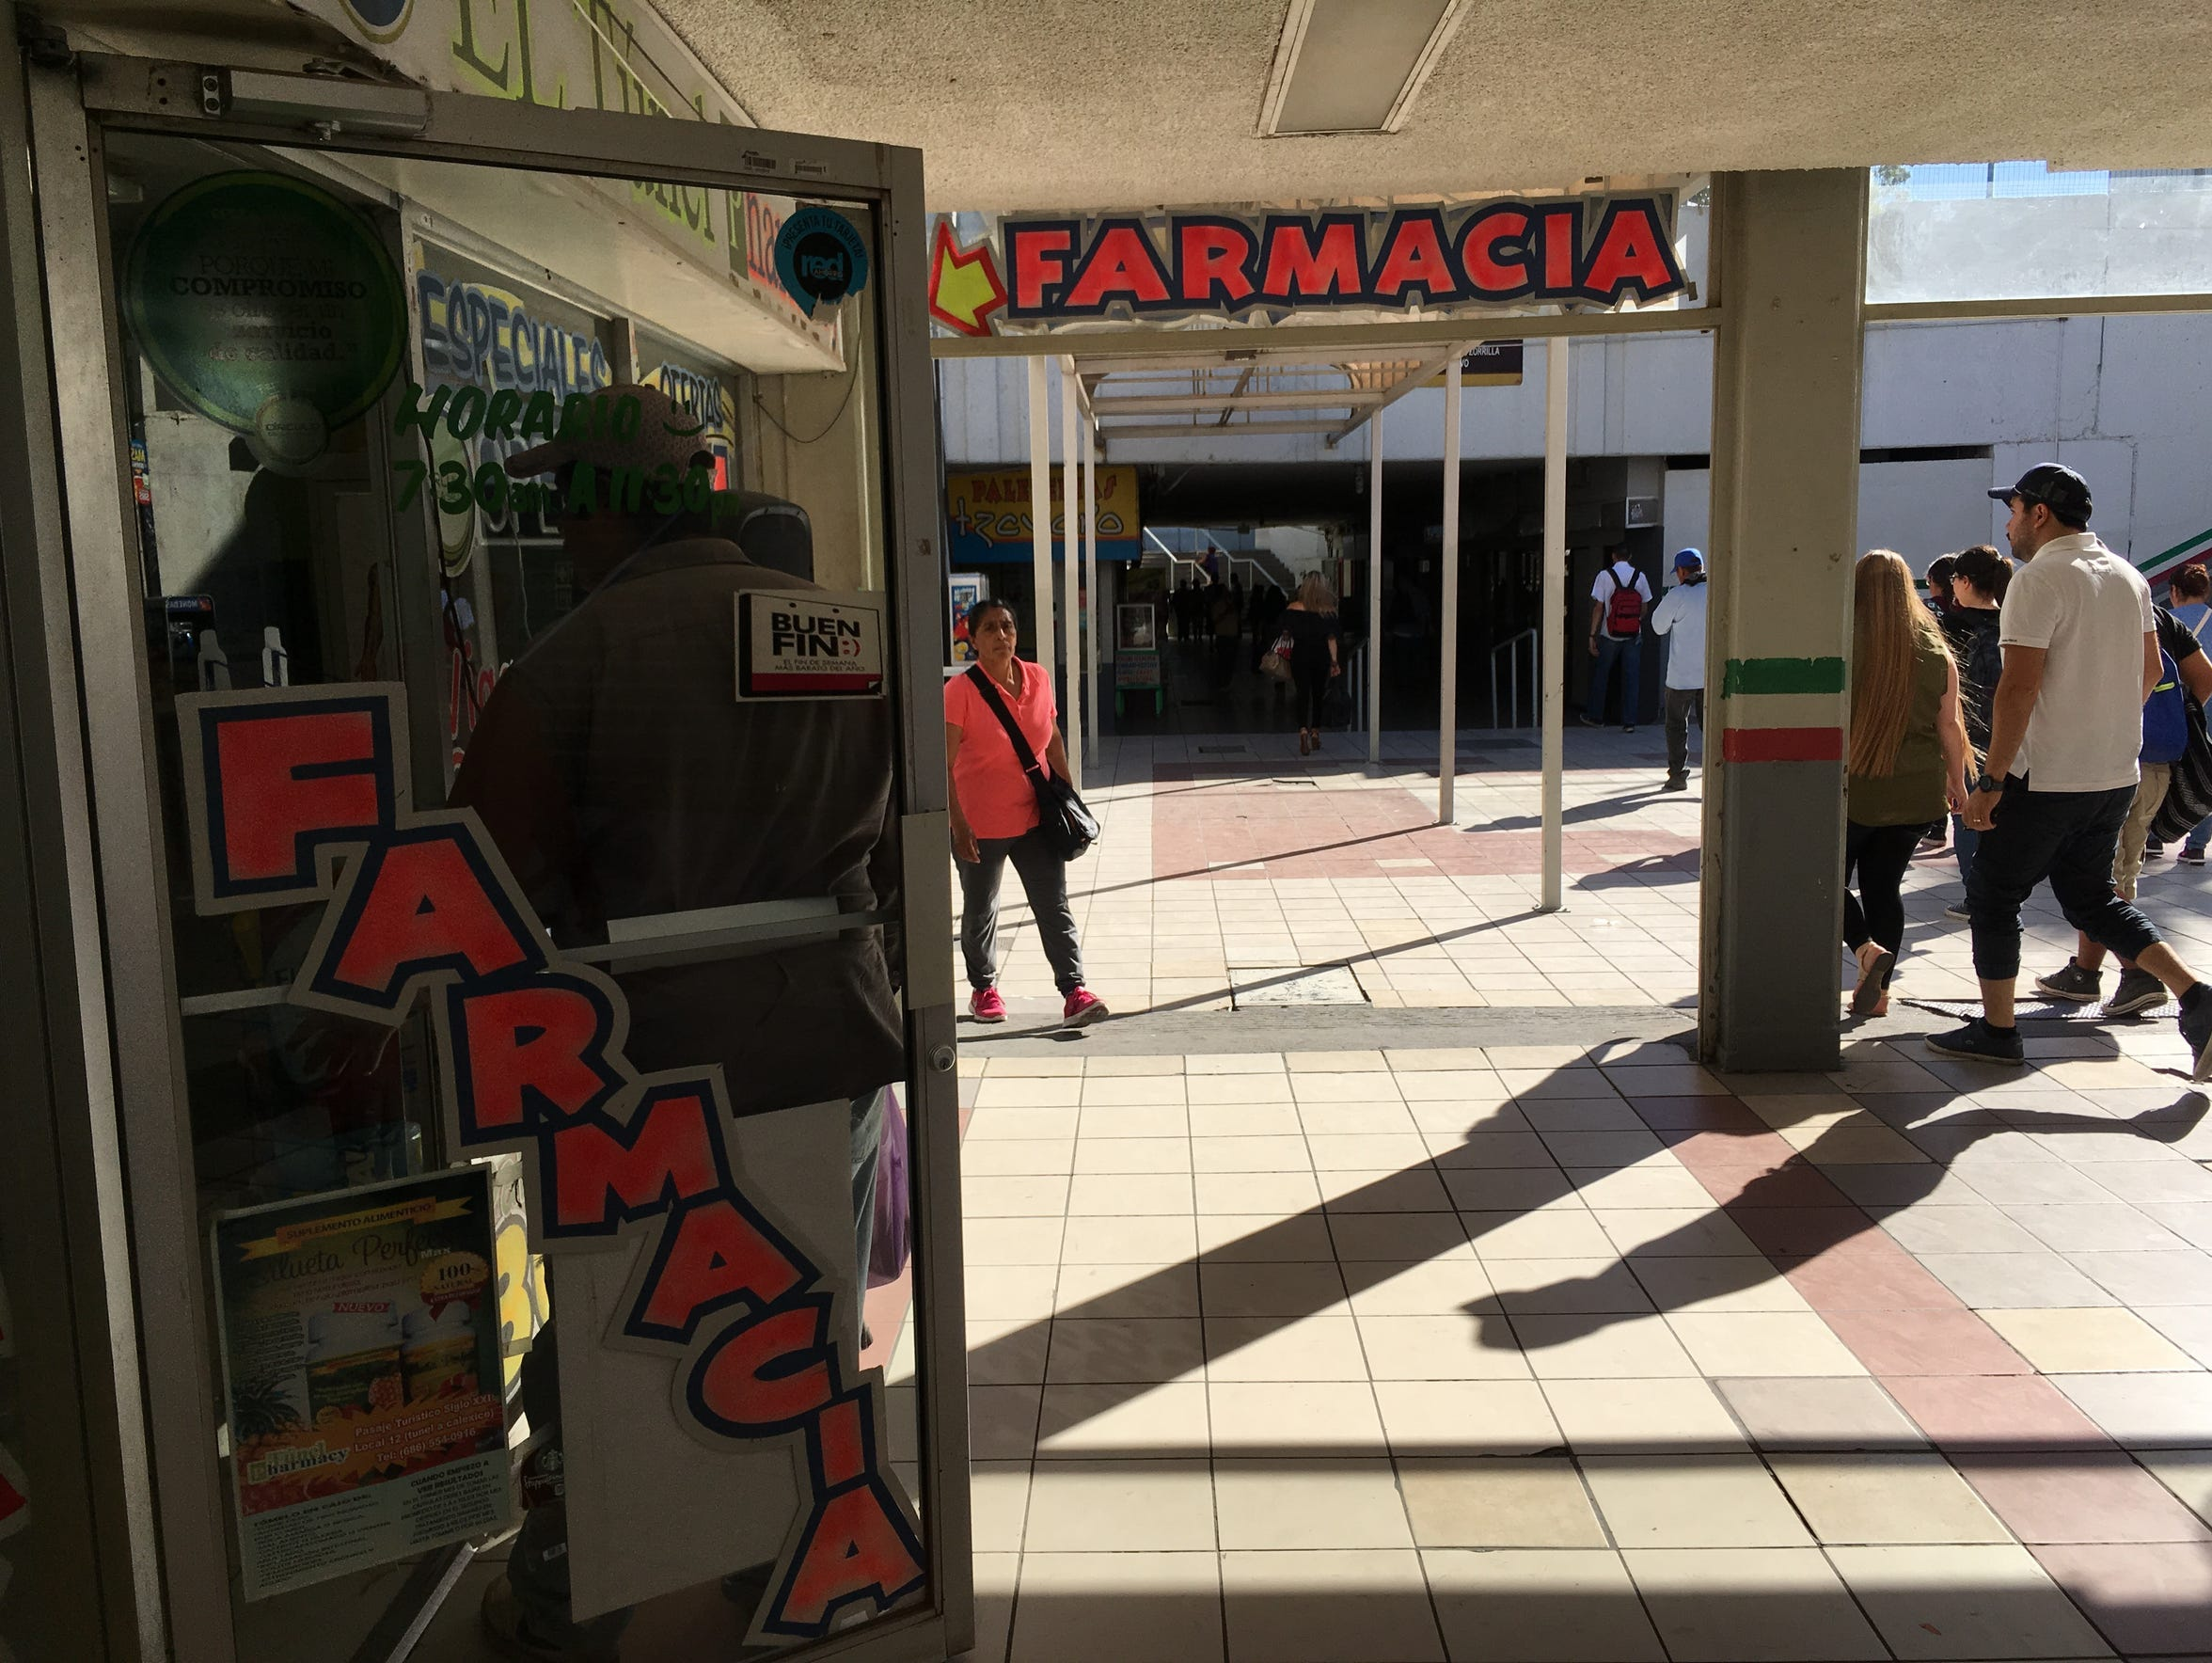 Pharmacies in Mexicali, Mexico are set up in the tunnel